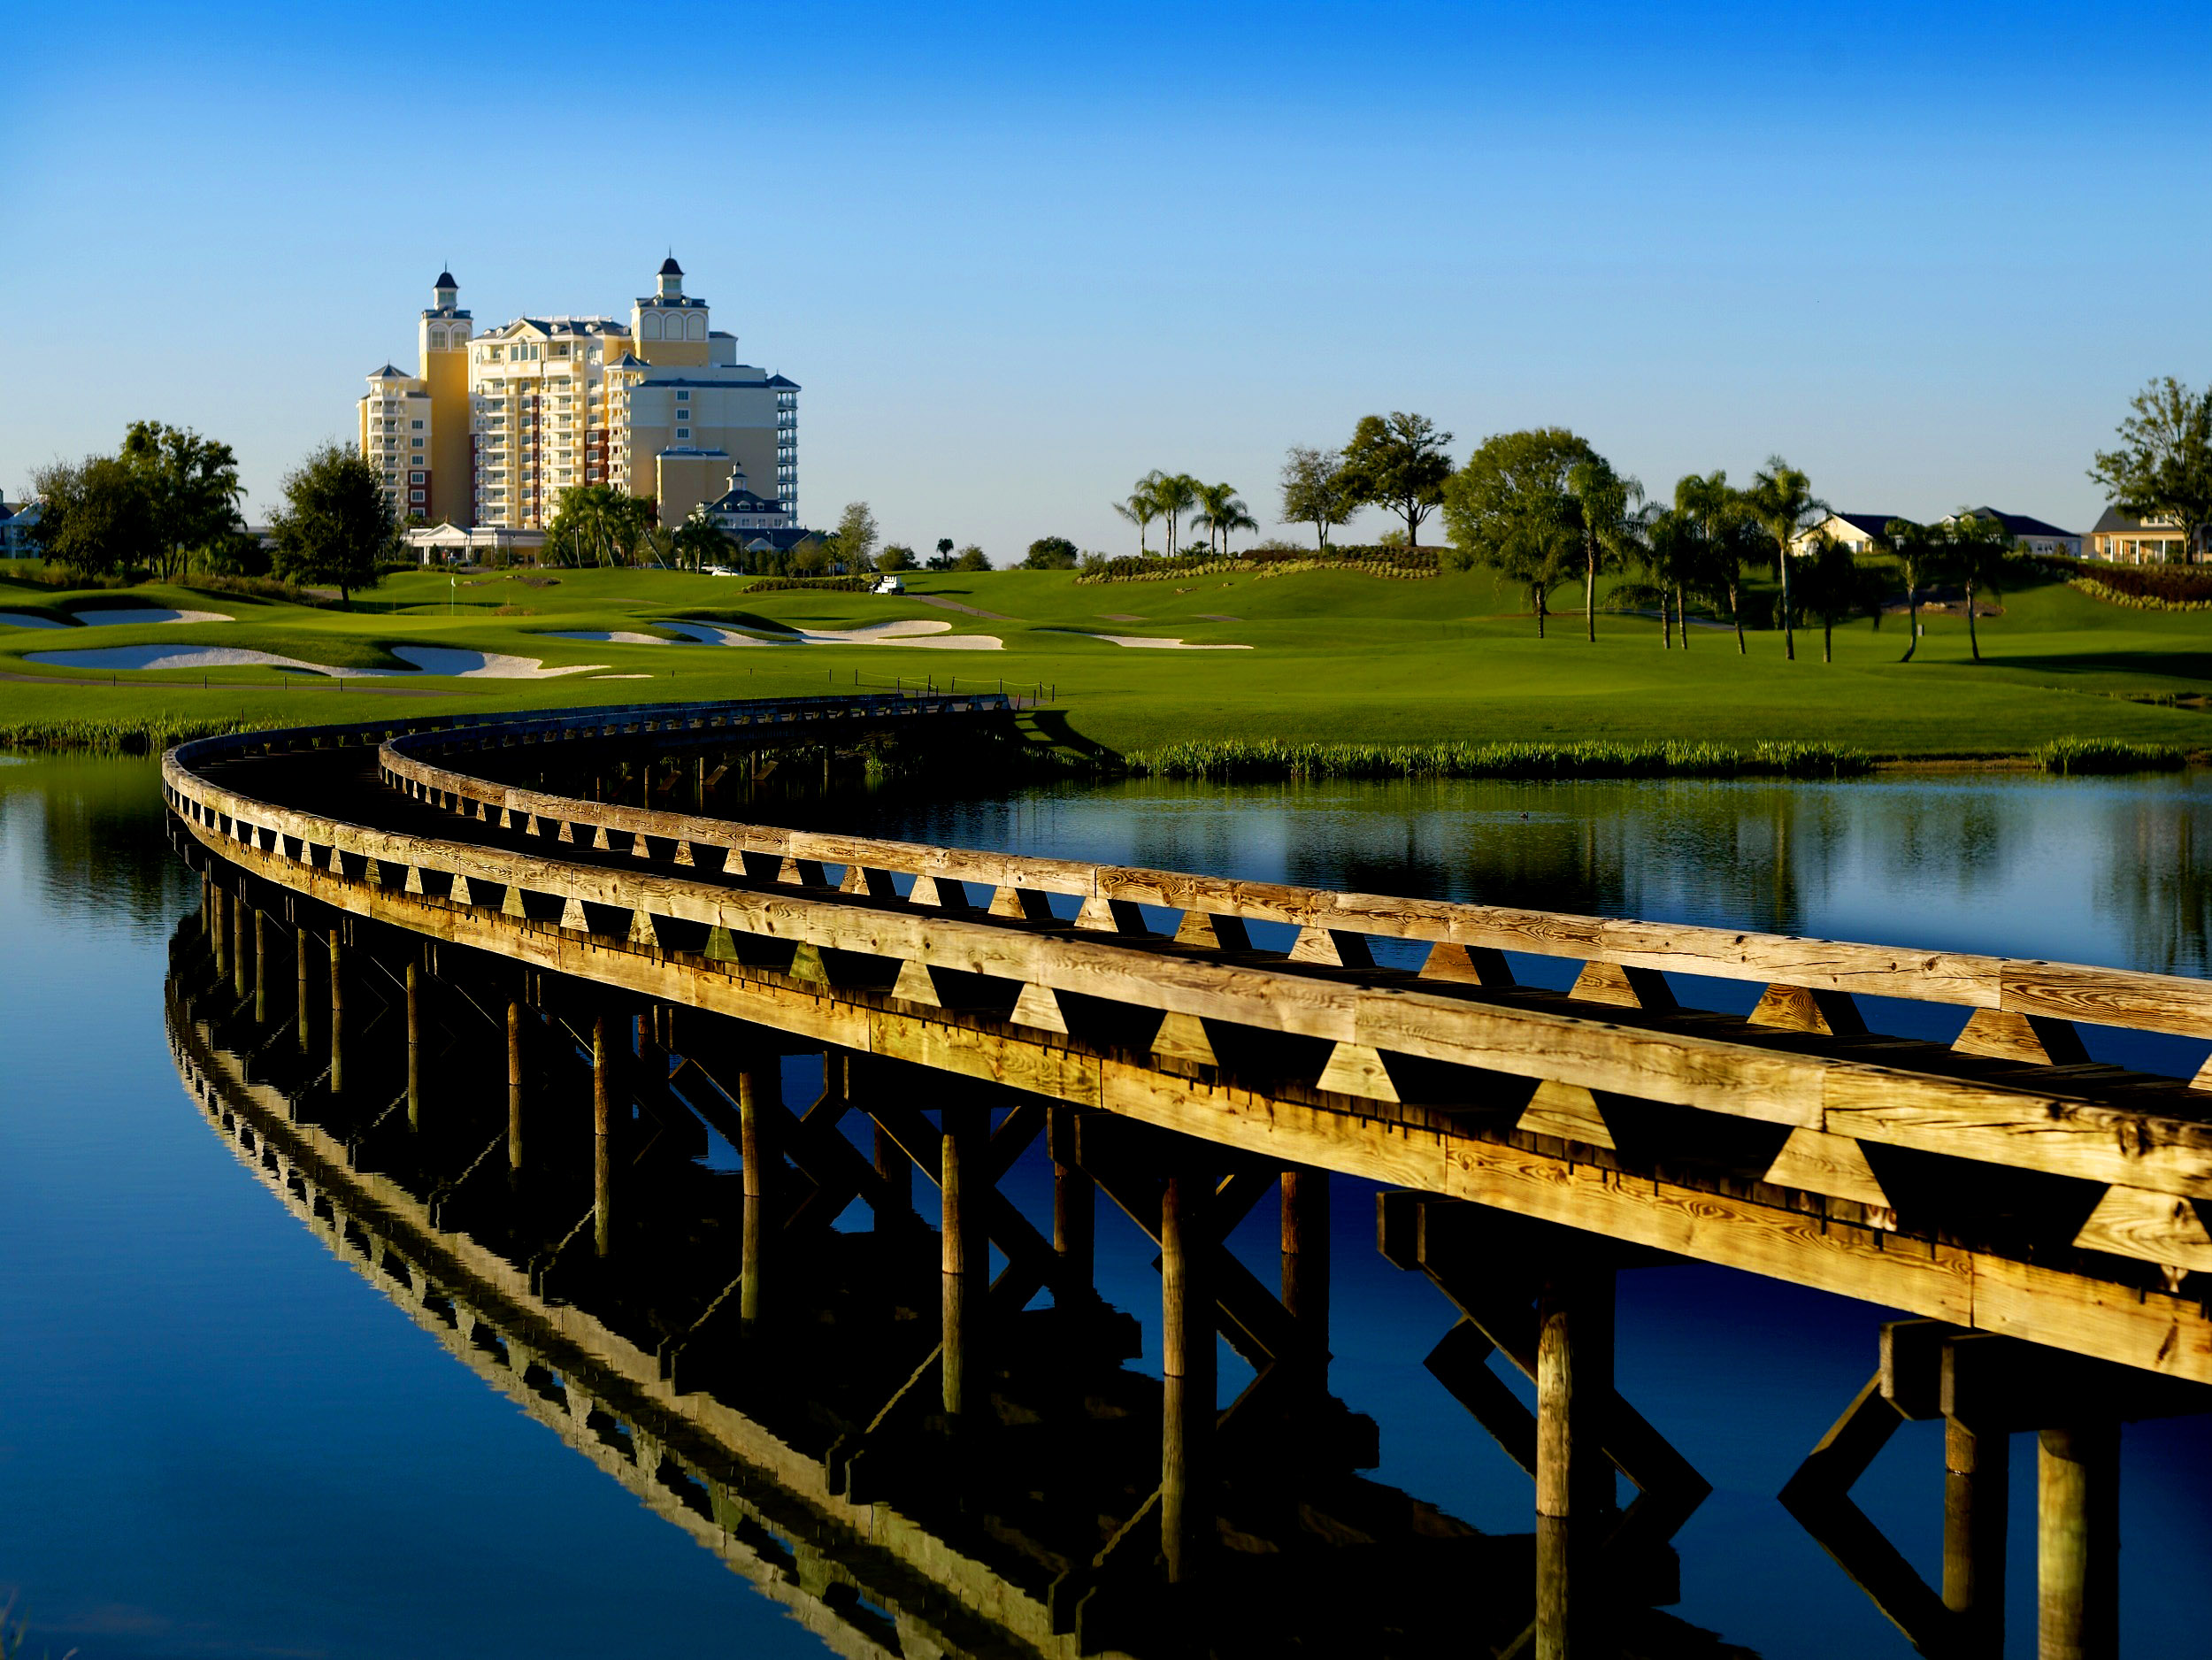 Reunion resort disney new vacation homes for sale at reunion resort in orlando